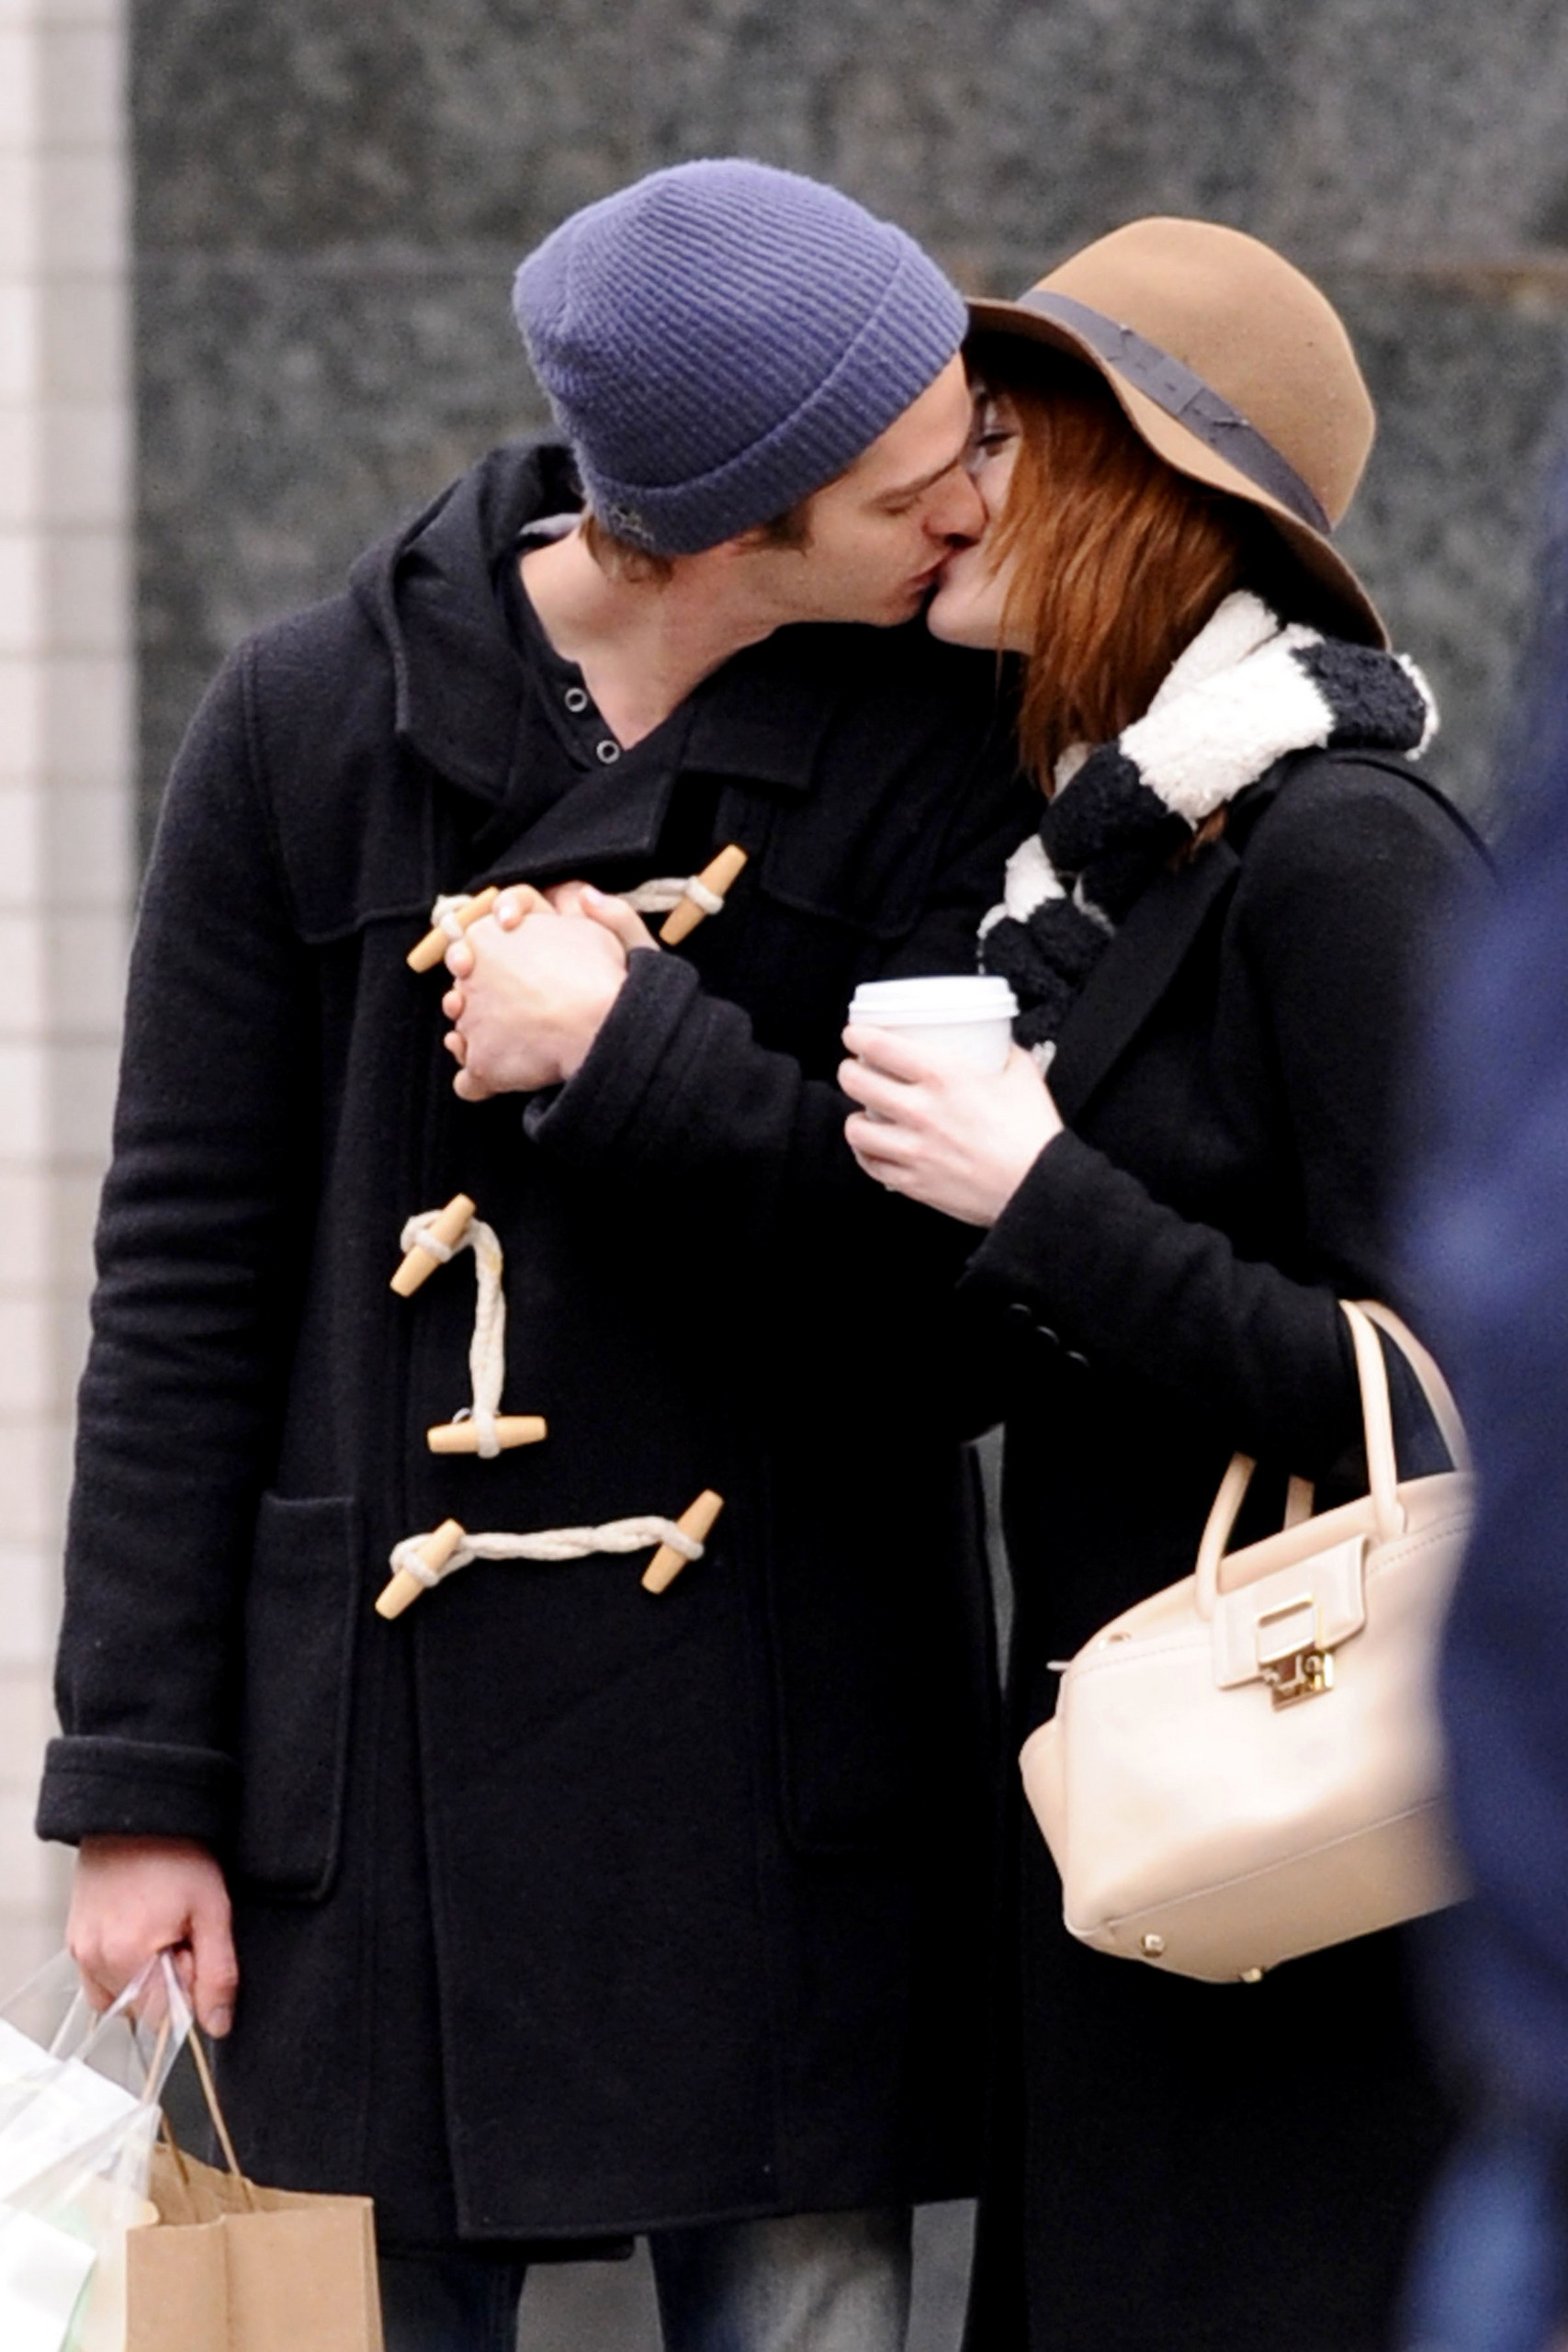 andrew garfield and emma stone dating yahoo Former couple andrew garfield and emma stone attended the governors awards at the ray dolby ballroom in hollywood on saturday night, and garfield and stone split in 2015 after dating for four years, but remain friendly related: emma stone dating 'saturday night live' writer dave mccary.